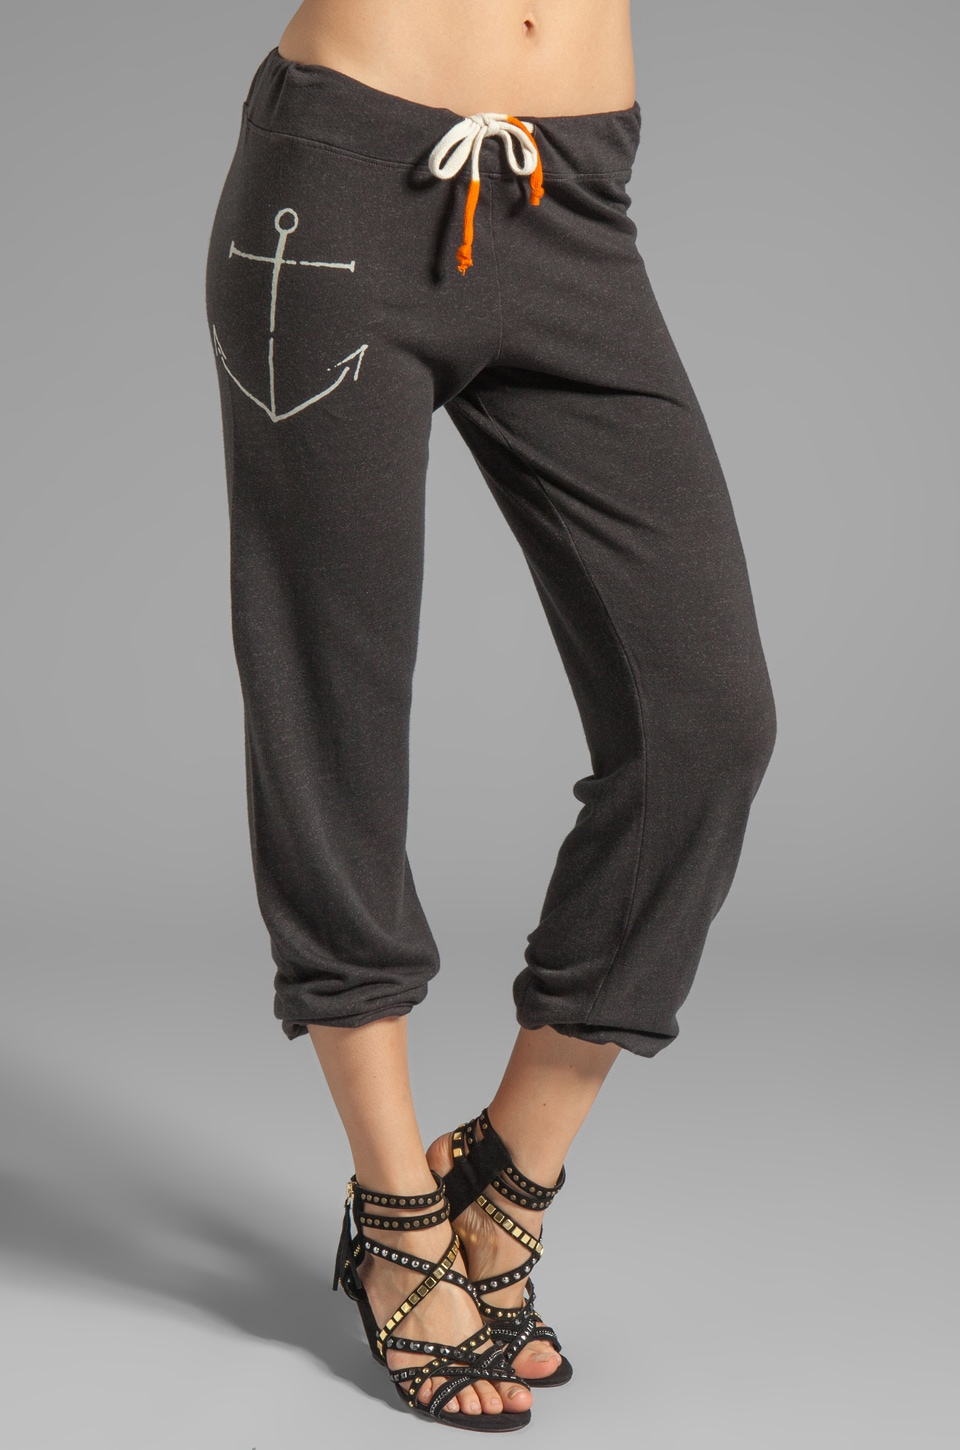 SUNDRY La Marina Sweatpants in Old Black